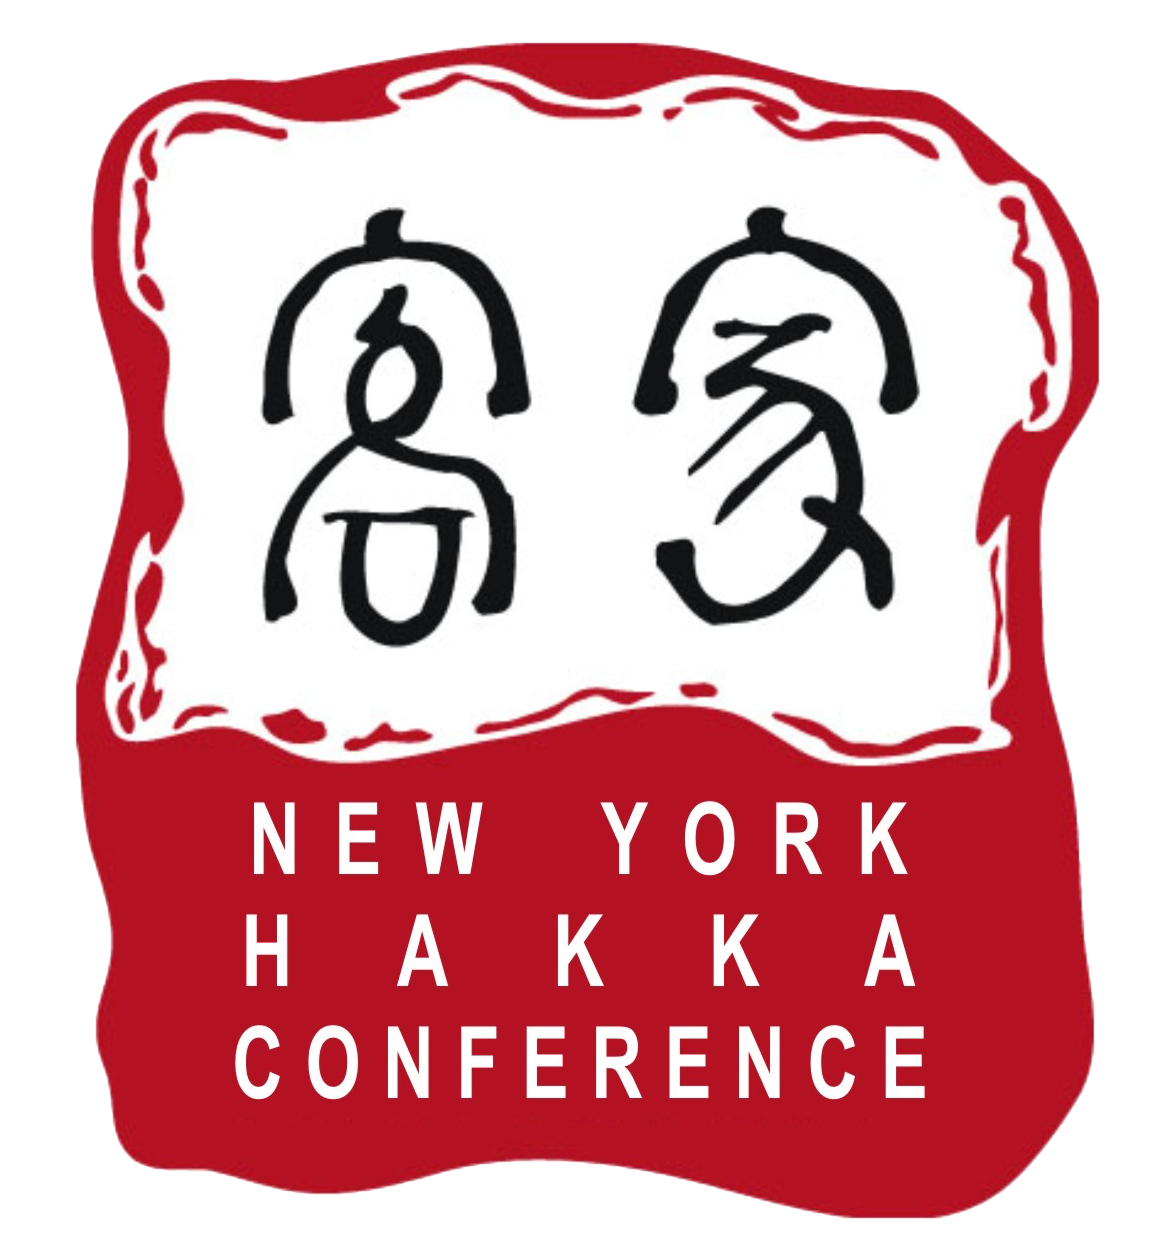 New York Hakka Conferemce 2019